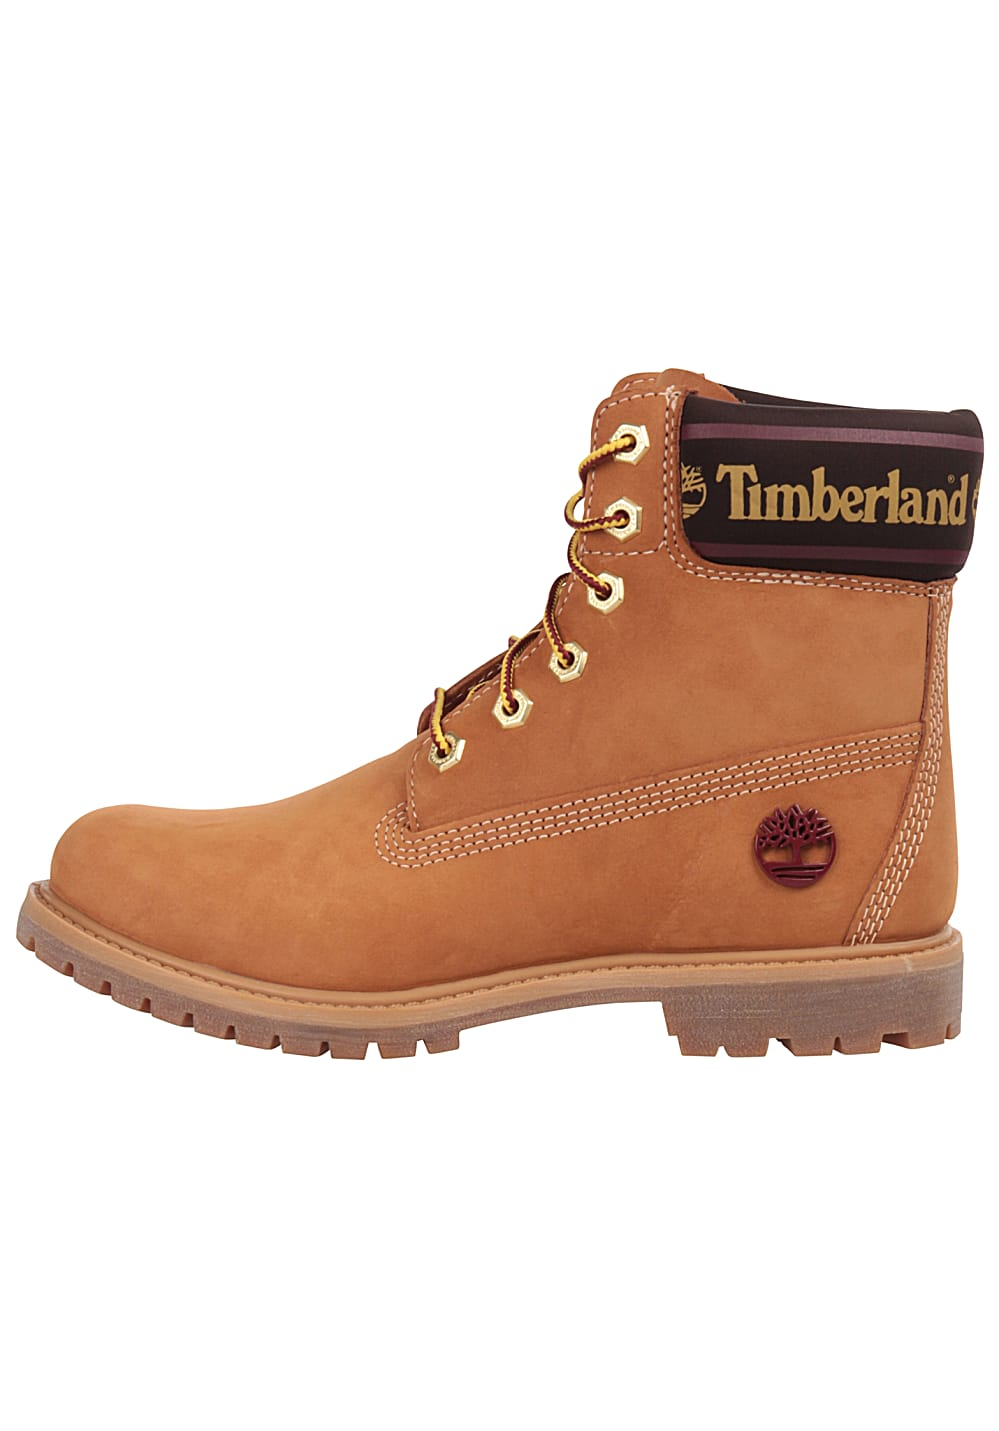 TIMBERLAND 6Inch Premium WSock Boots for Women Brown